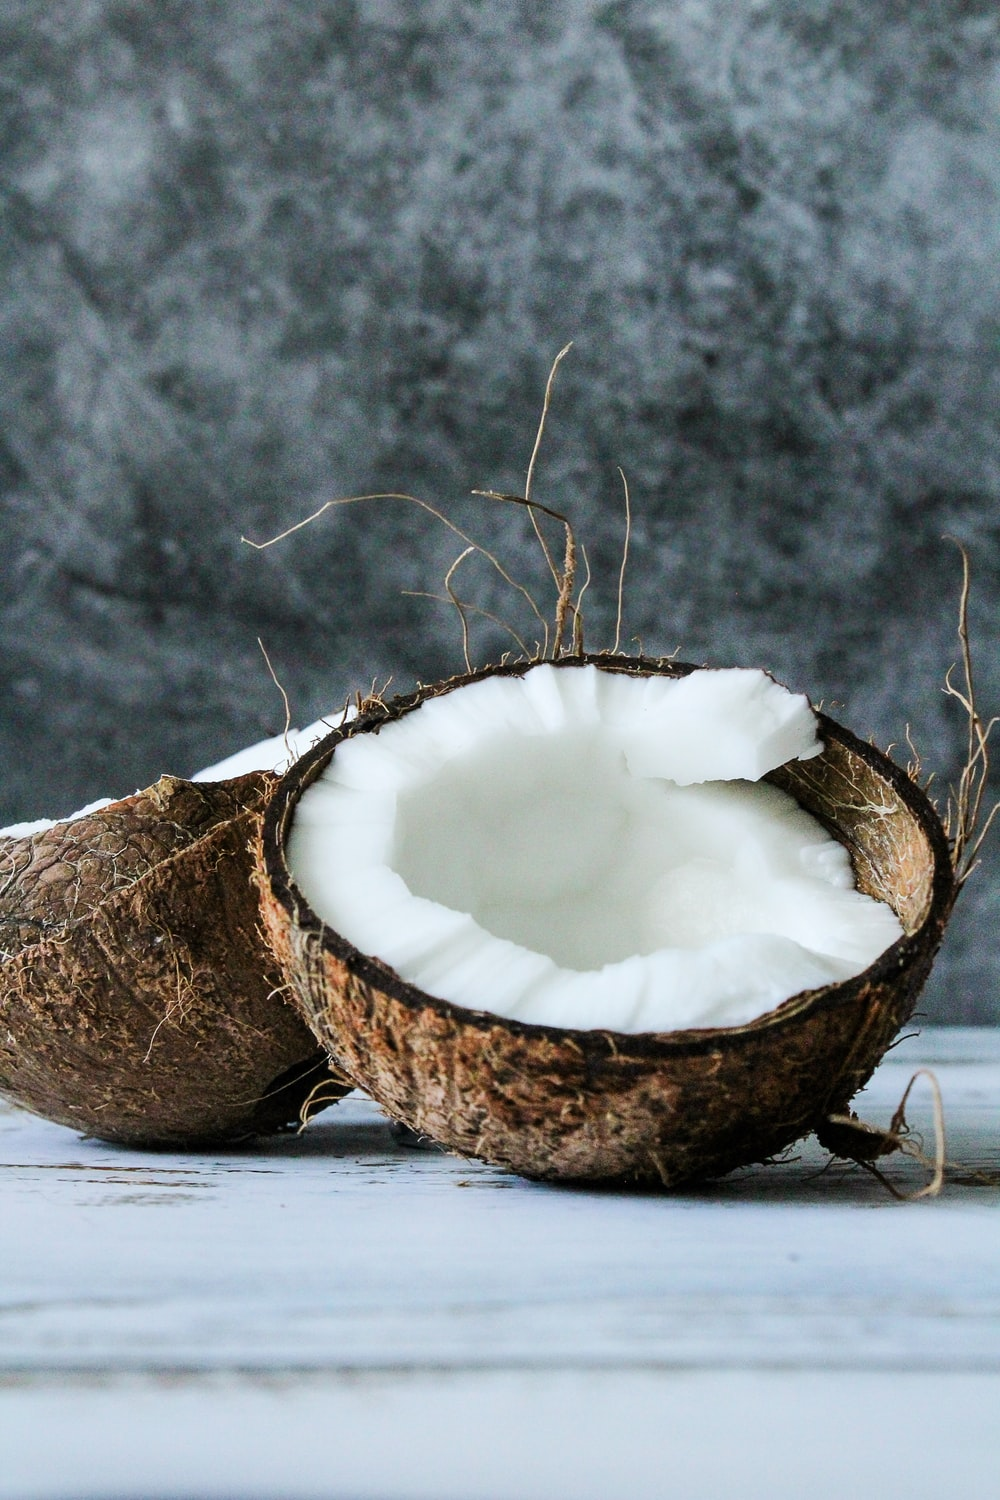 brown and white coconut shell on white snow